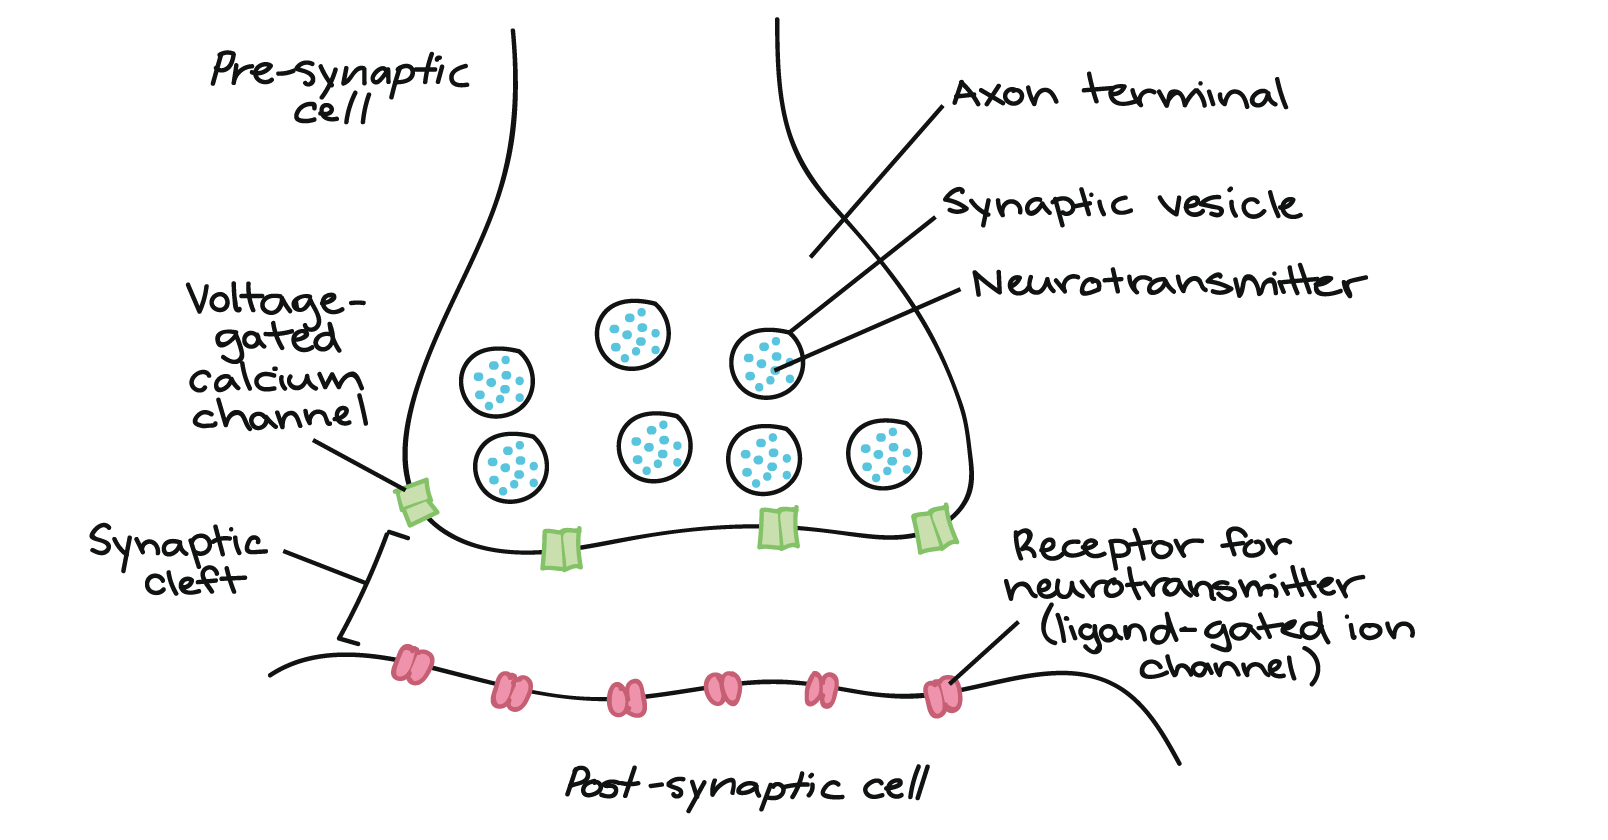 e22a2d1e88ea9ee810bdc3d8342e29b7e51057d2 the synapse (article) human biology khan academy  at bayanpartner.co